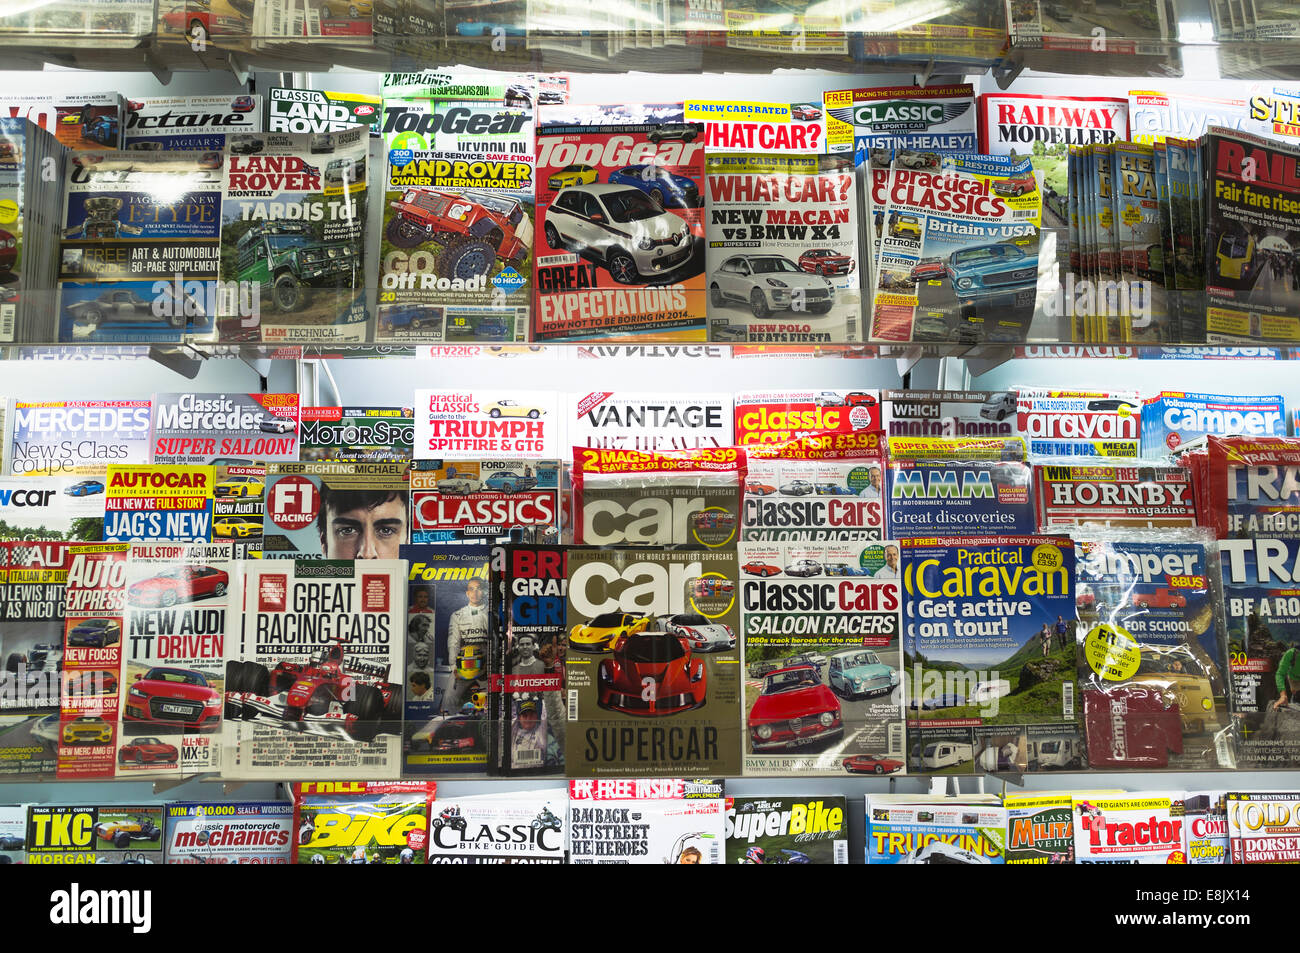 dh WH Smiths Magazines WH SMITH UK Whsmiths Magazine rack Birmingham M42 service station shop display covers - Stock Image